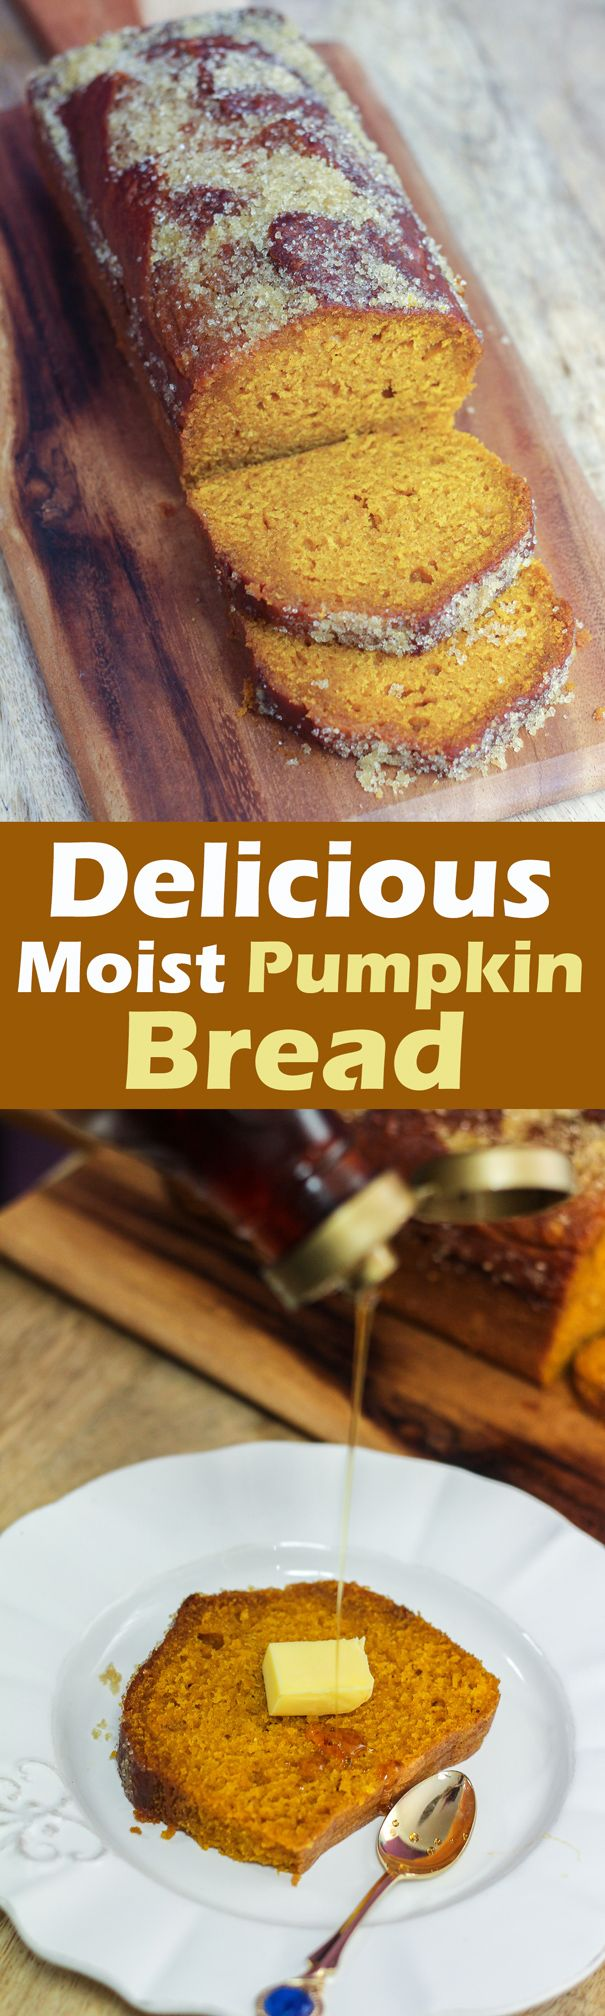 Moist Pumpkin Bread | Recipe | Moist Pumpkin Bread, Pumpkin Bread ...